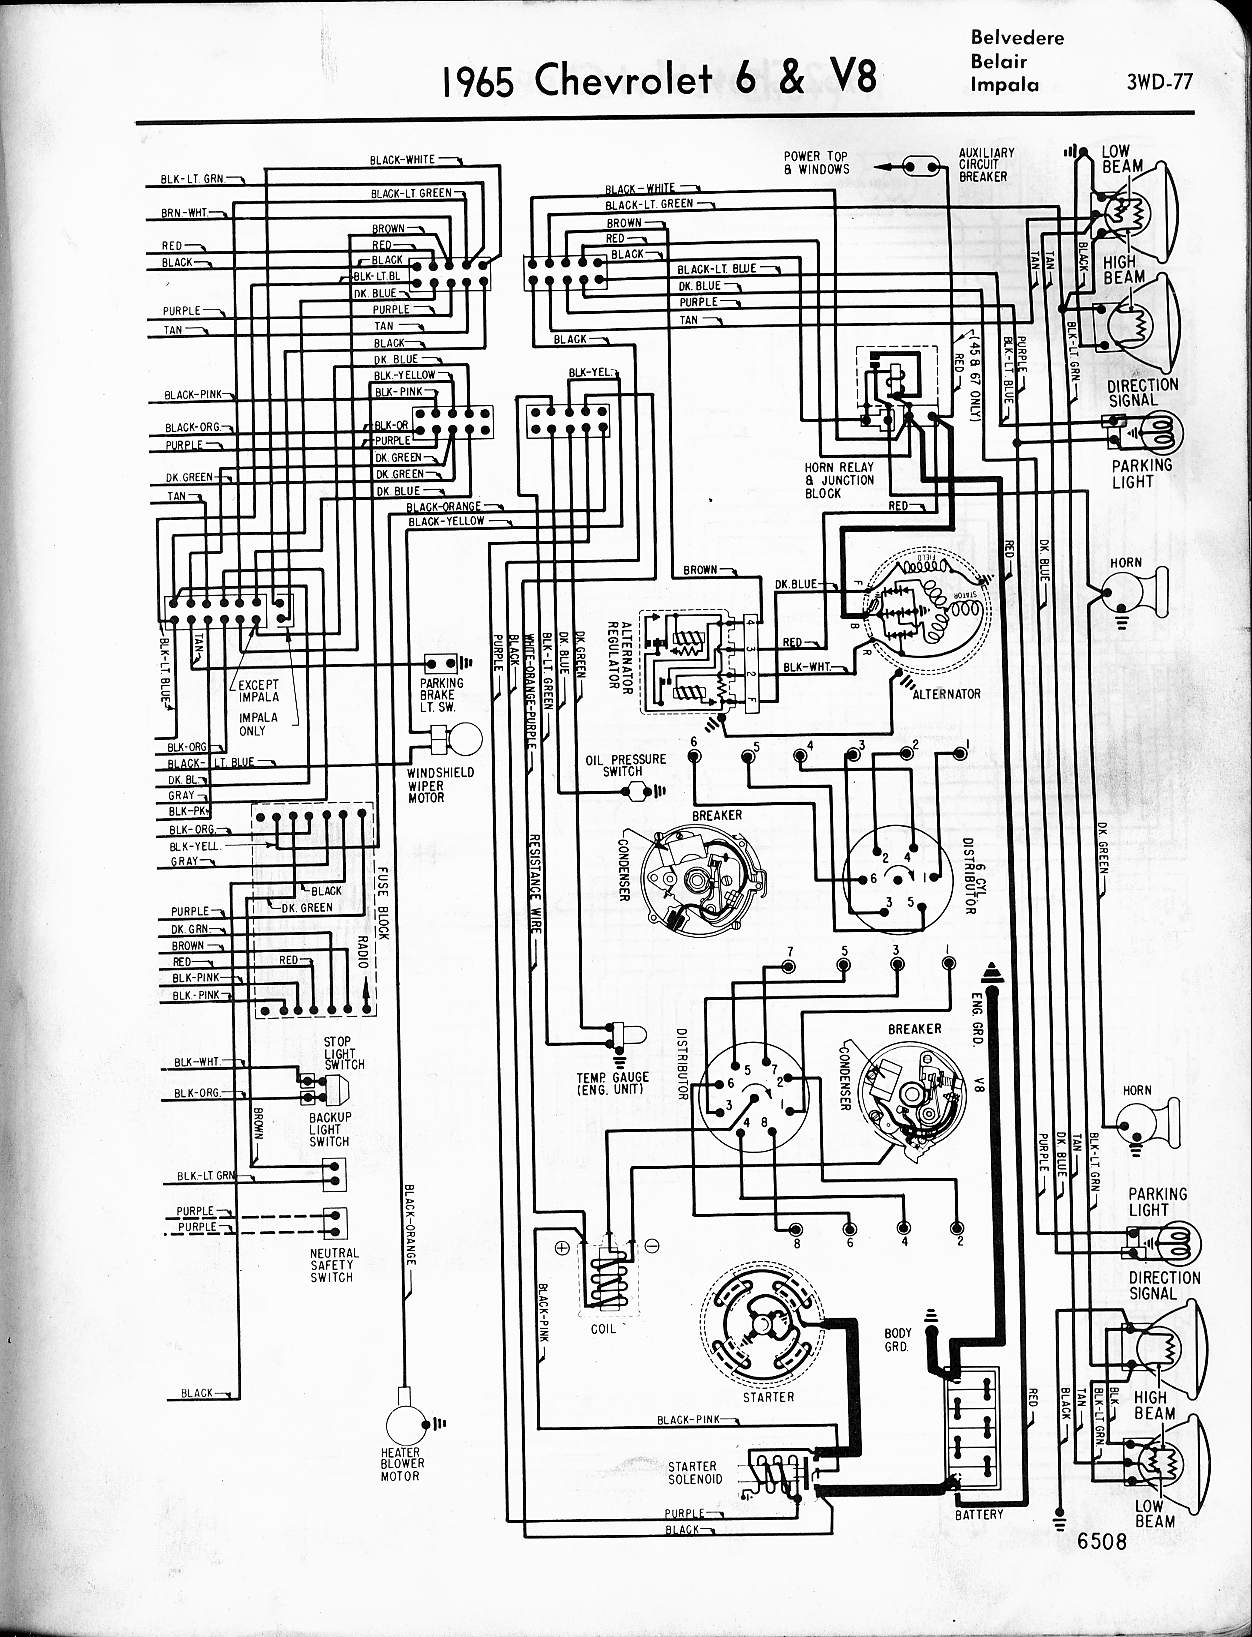 1964 chevy nova wiring diagram dc to ac inverter schematic 1966 impala starter free engine image